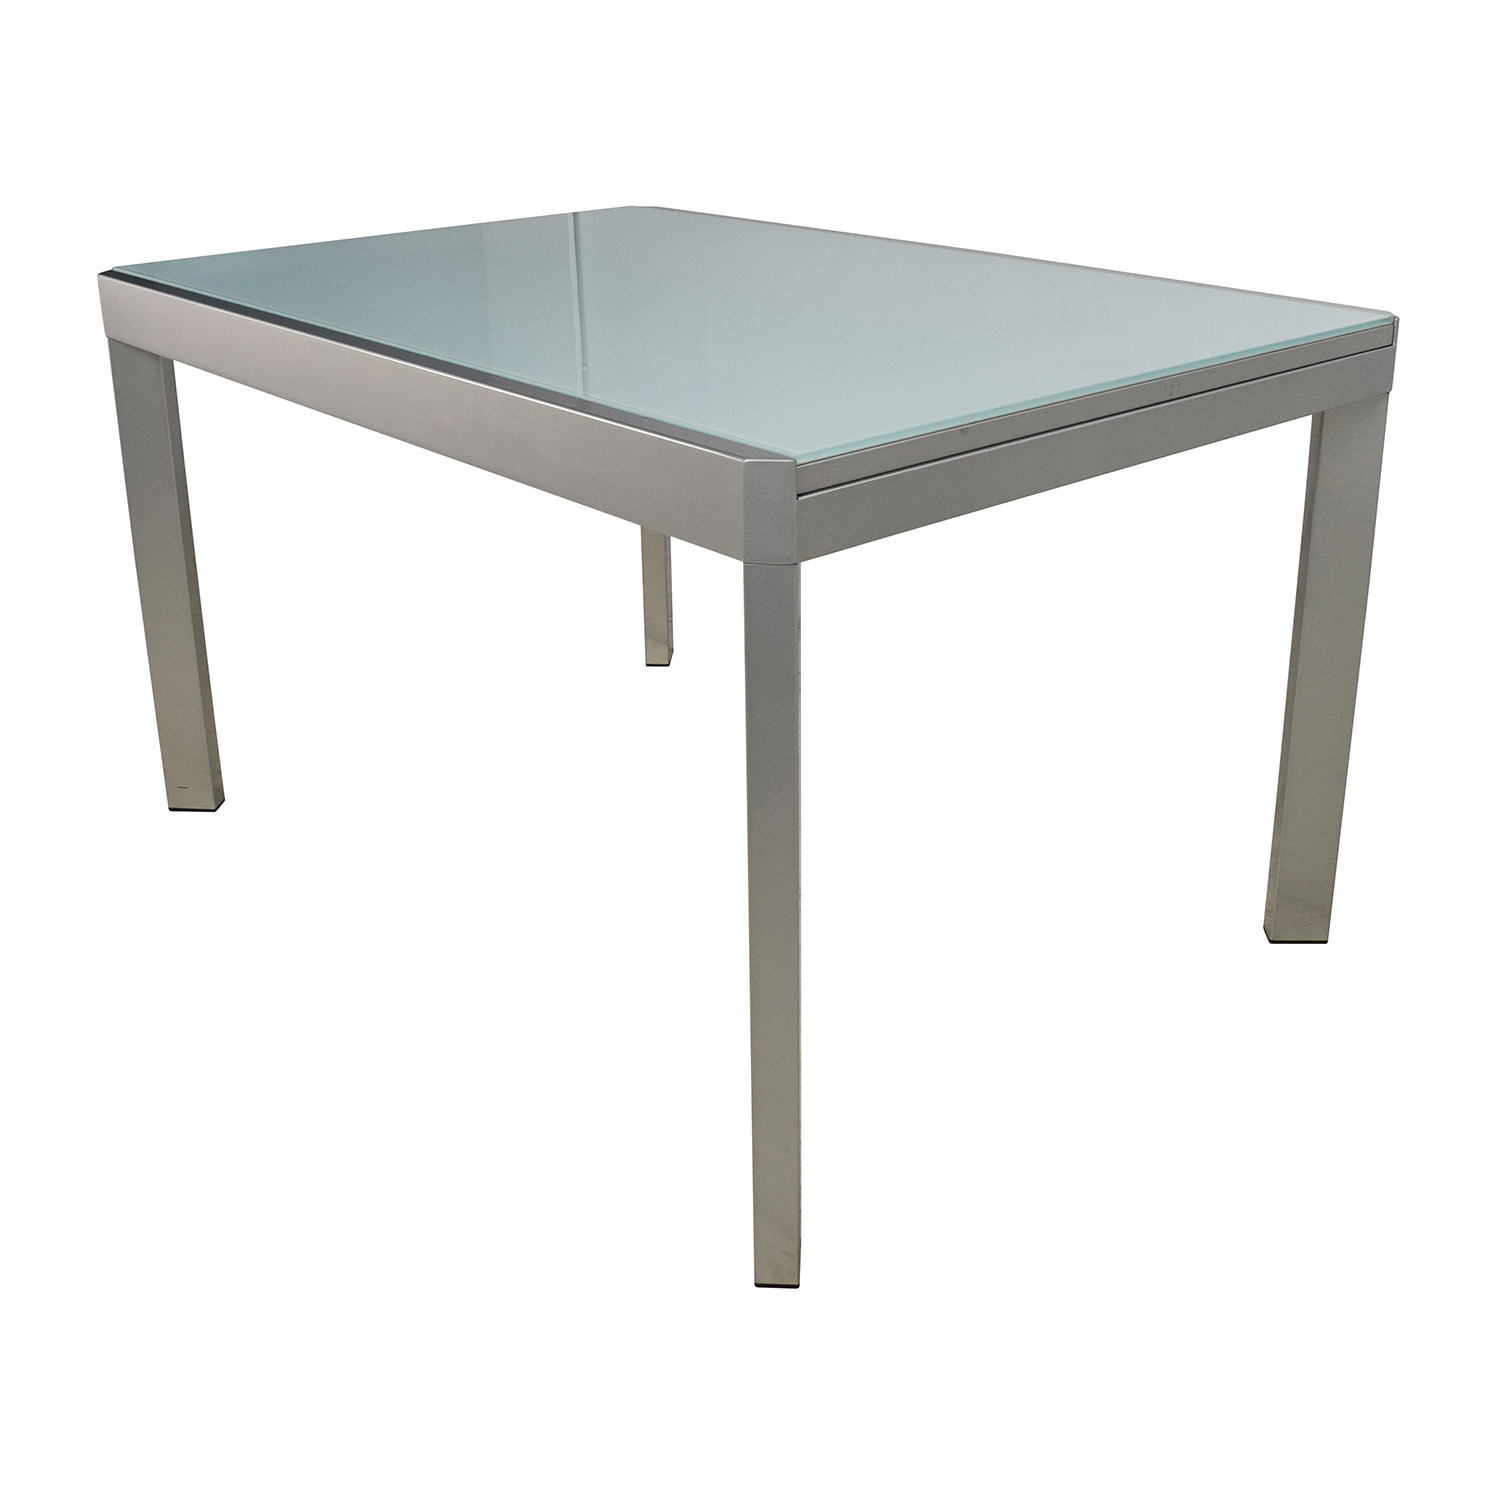 Extendable Breakfast Table 86 Off Calligaris Calligaris Extendable Glass Dining